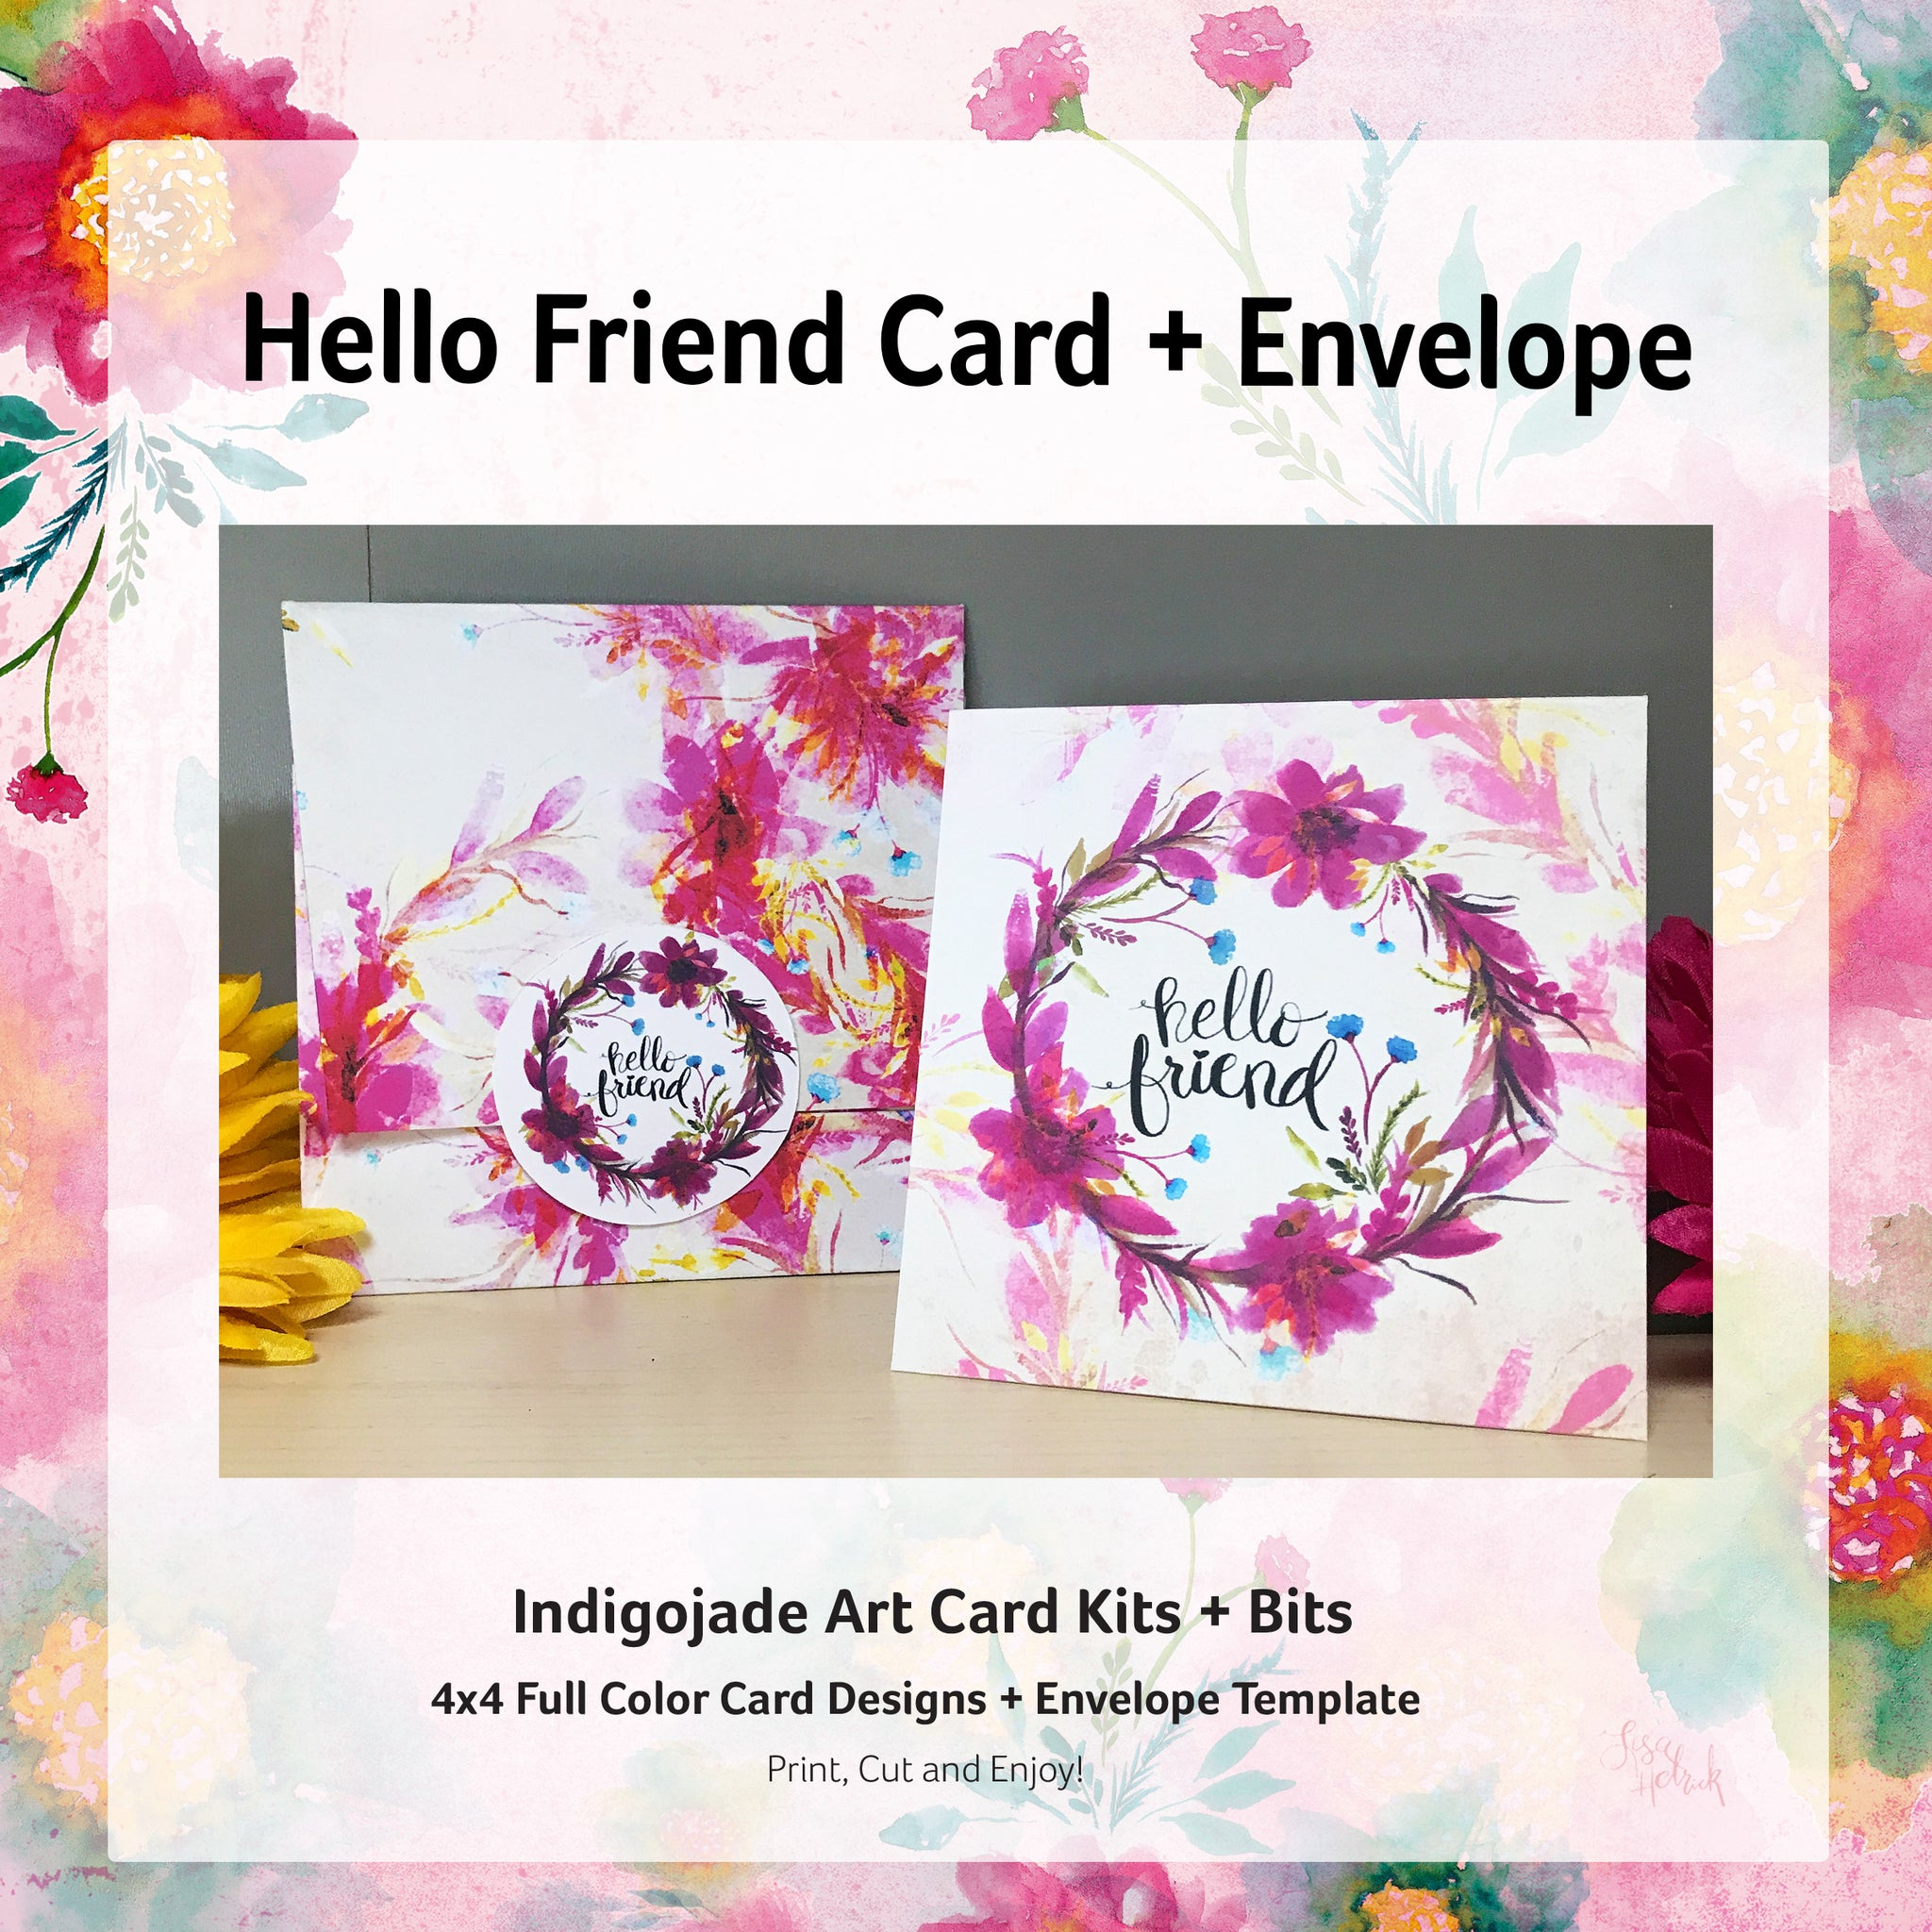 picture about Printable Friendship Cards titled Printable Card Package: Howdy Buddy Indigojade Inventive, LLC.